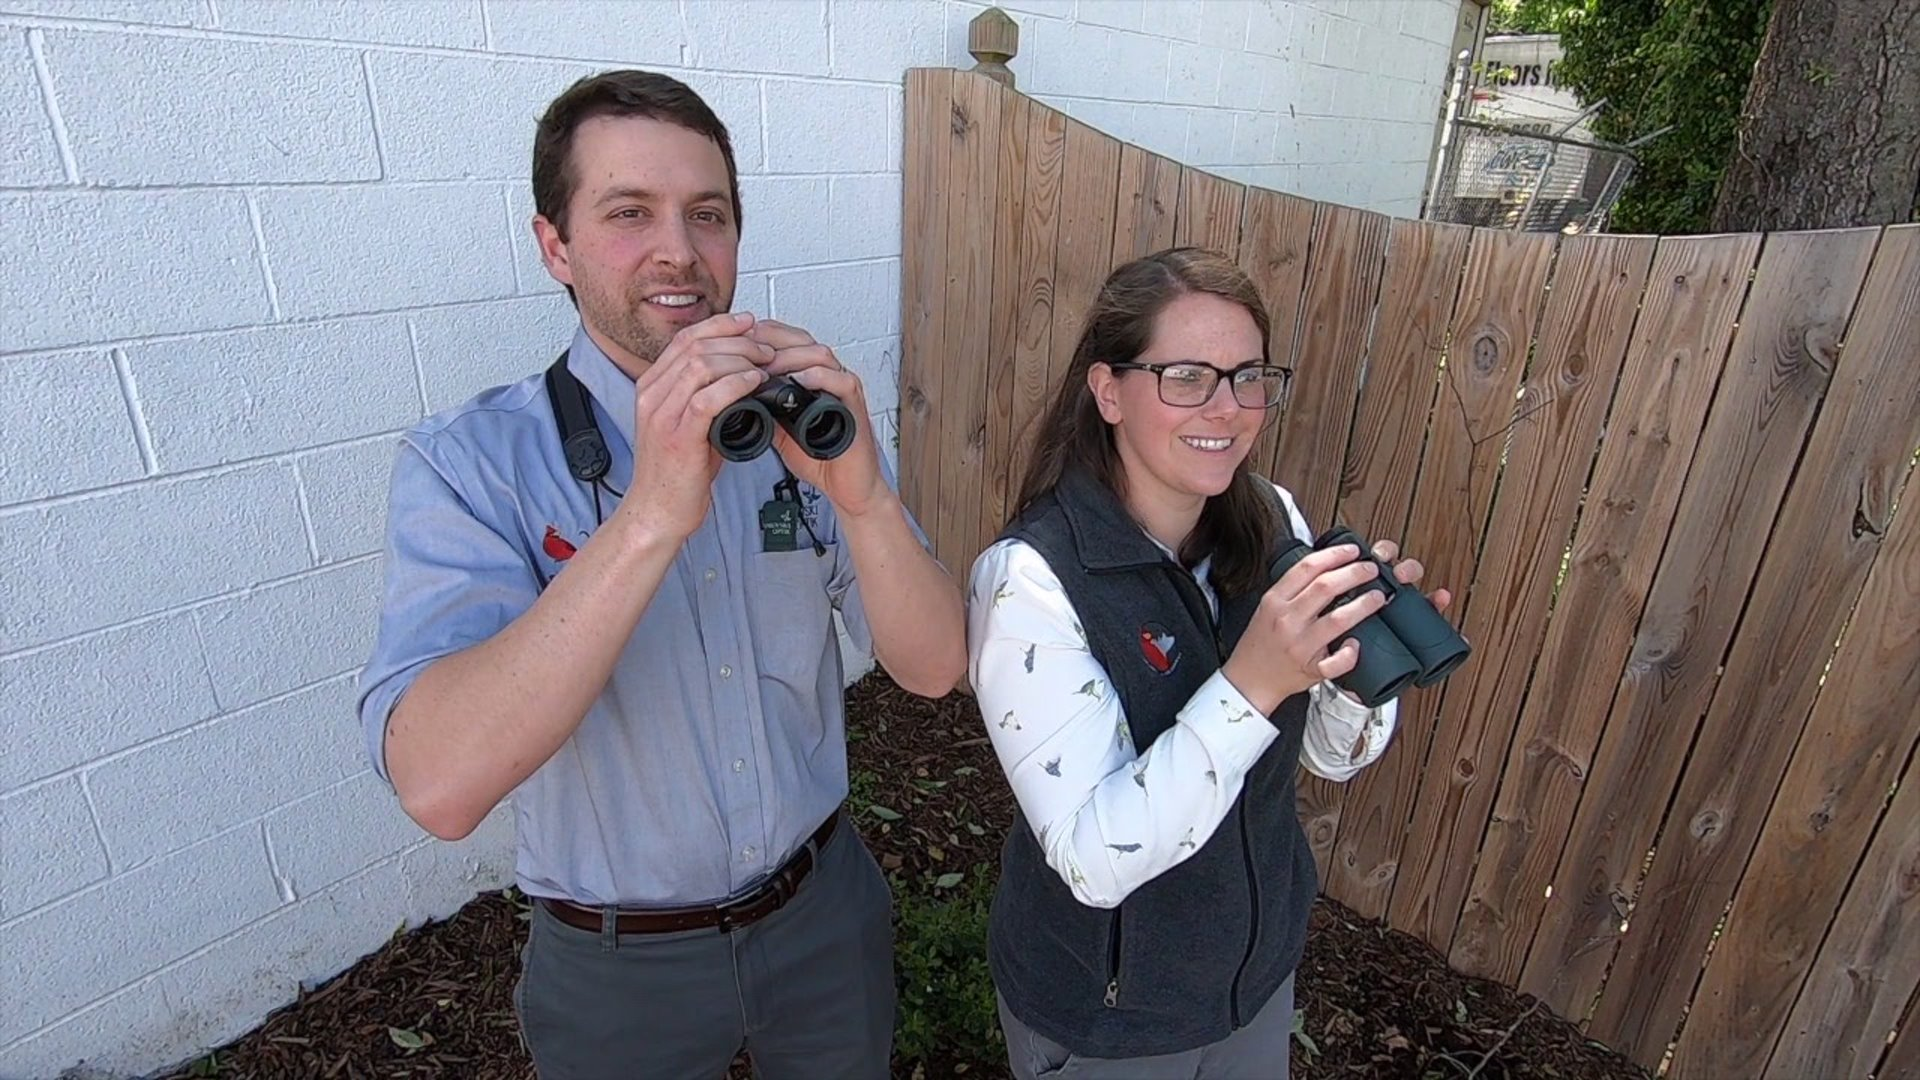 Local couple shares love of birdwatching by opening birding center